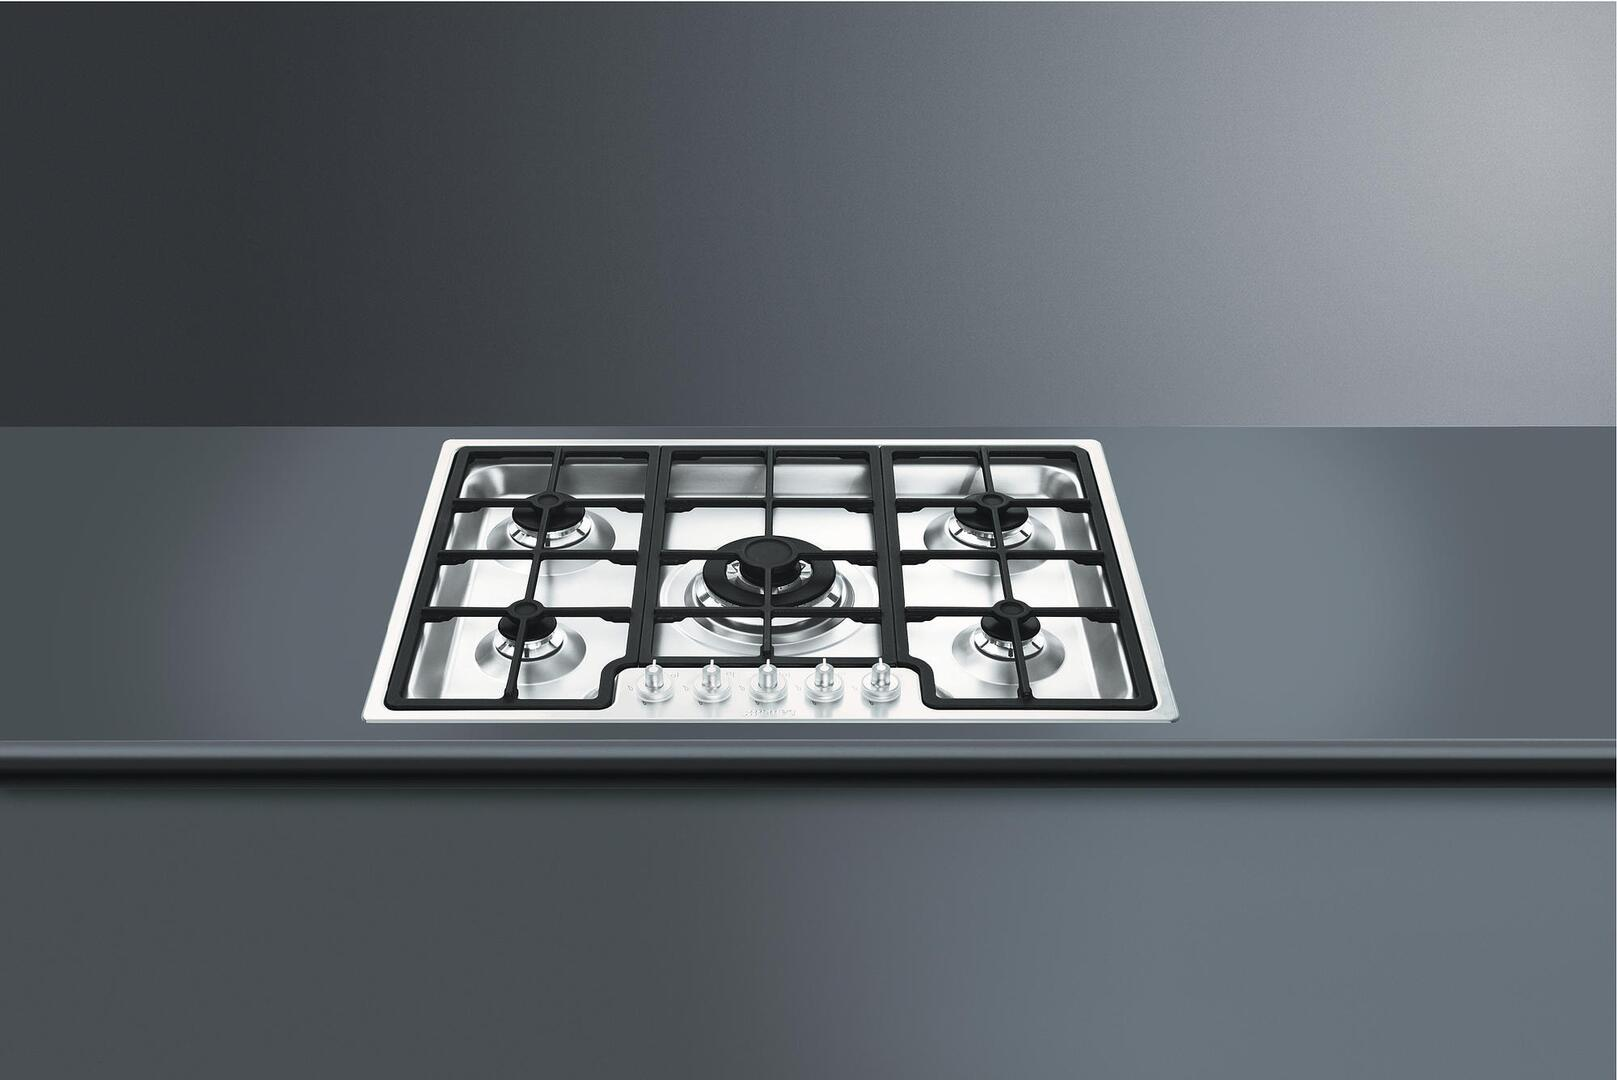 how to clean smeg stainless steel cooktop